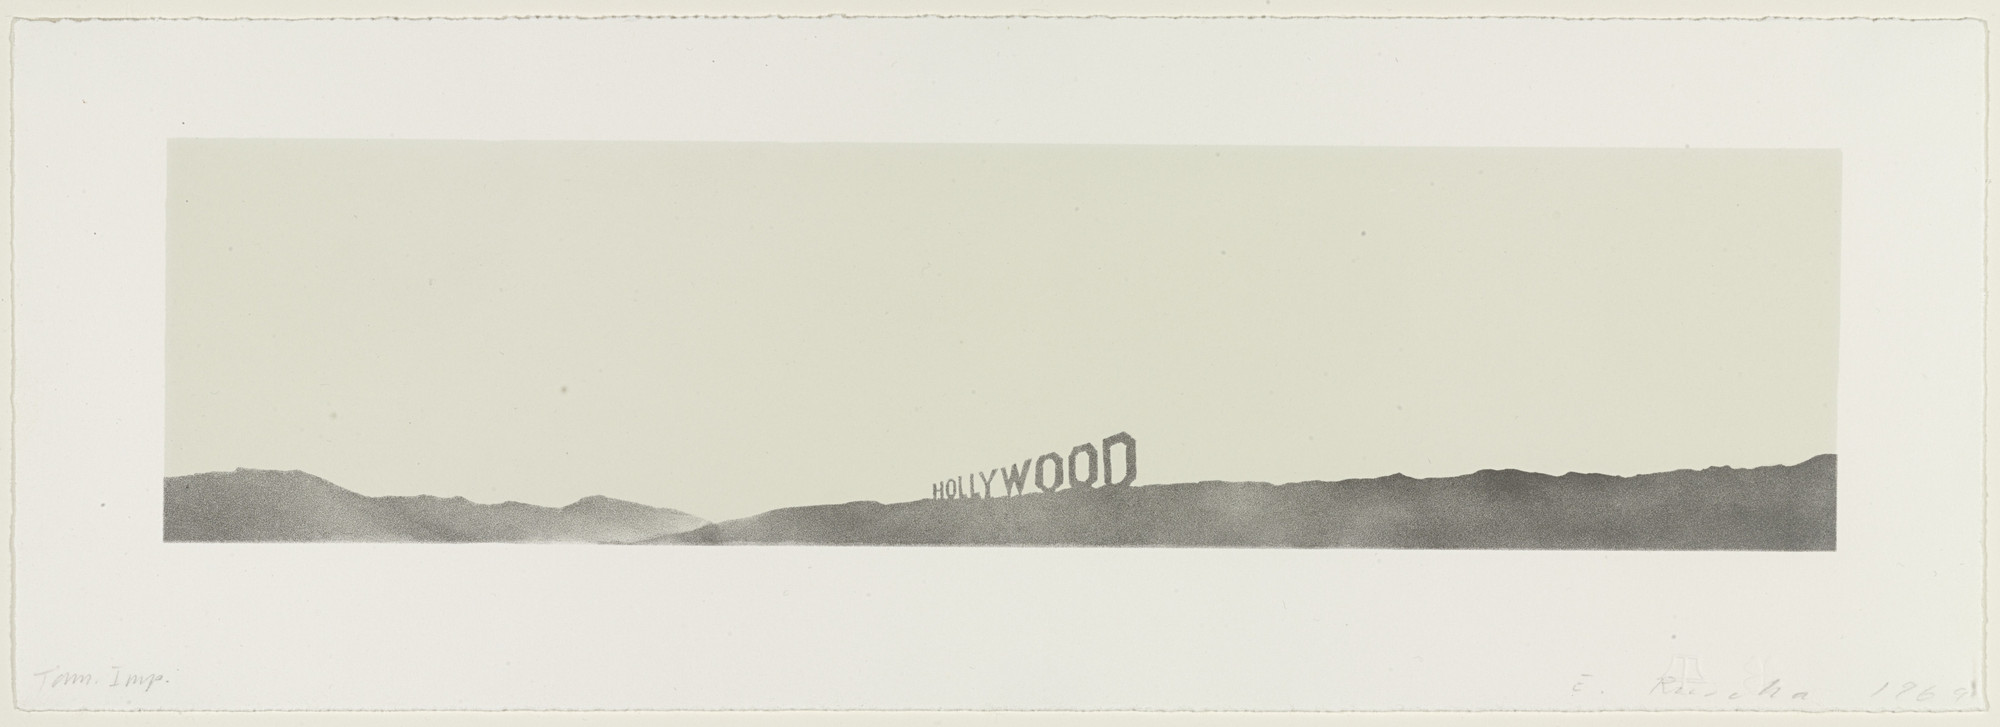 Edward Ruscha. Hollywood. 1969